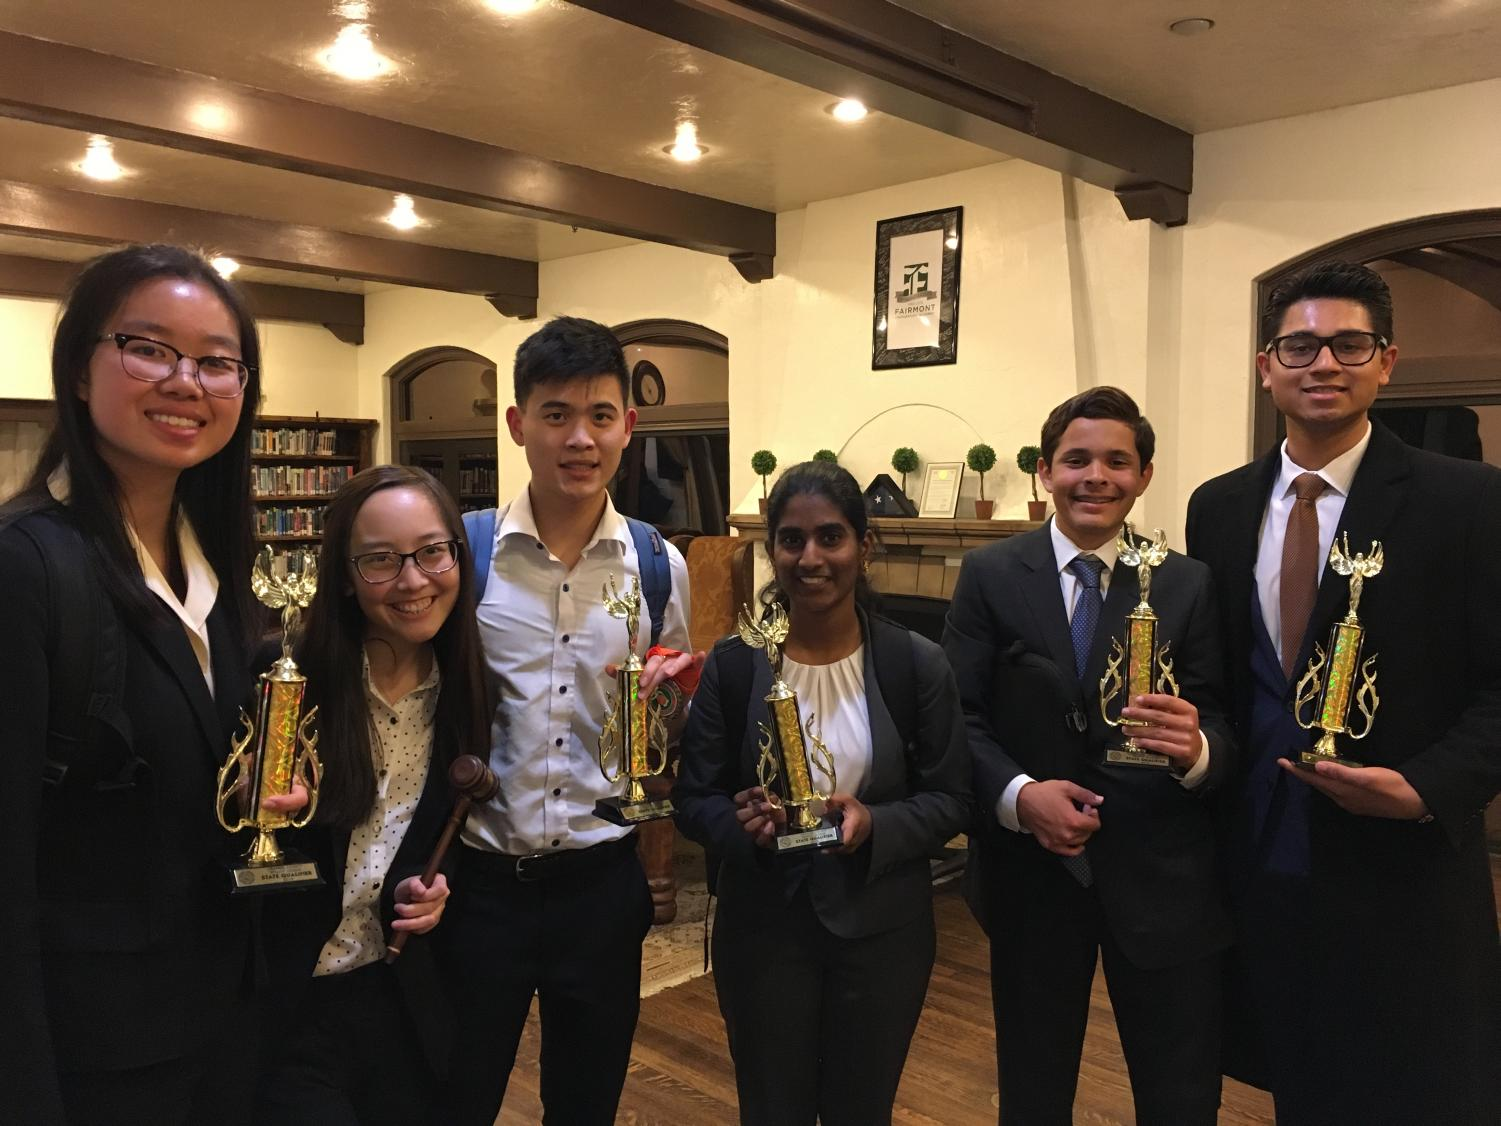 From left to right: Anna Zhang (10), Caitlyn Truong (11), Wayne Chan (12), Rohita Thammineni (10), Chris Mancini (9), and Rishi Kheni (12) are among several YLHS debate students qualifying for the state tournament in May.